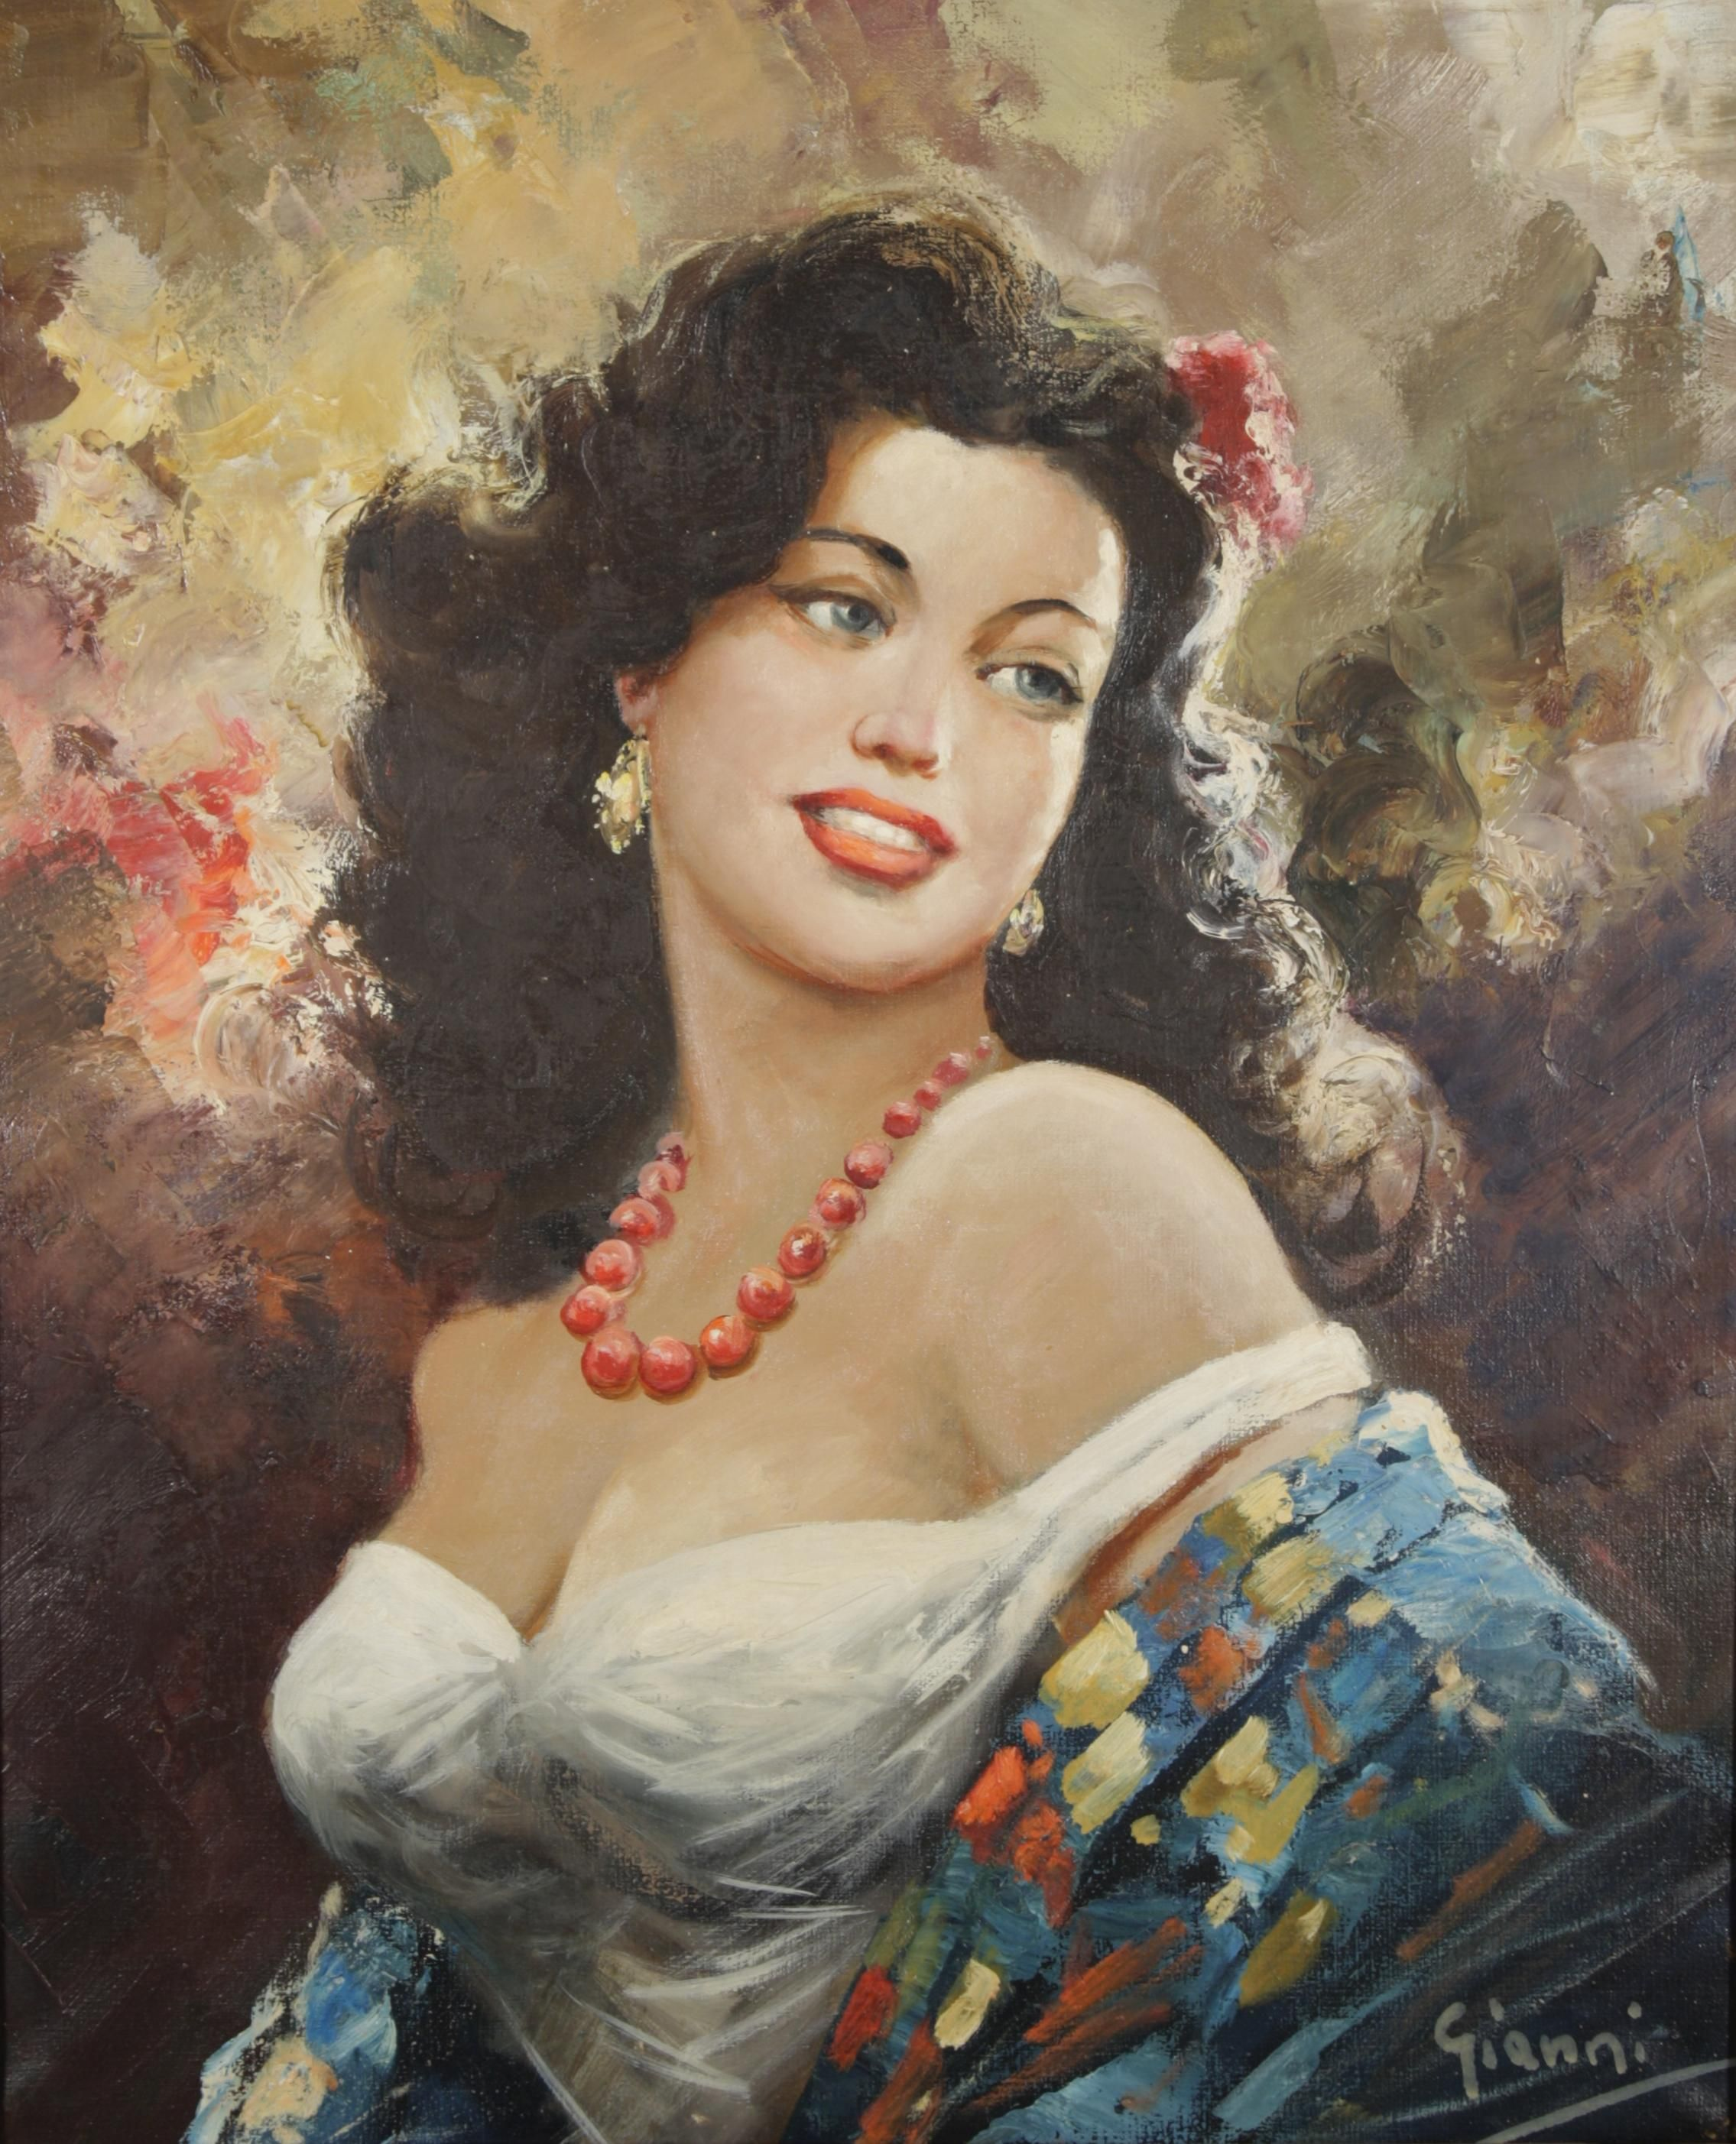 gianni portrait of a woman oil on canvas Η Γ�ναίκα